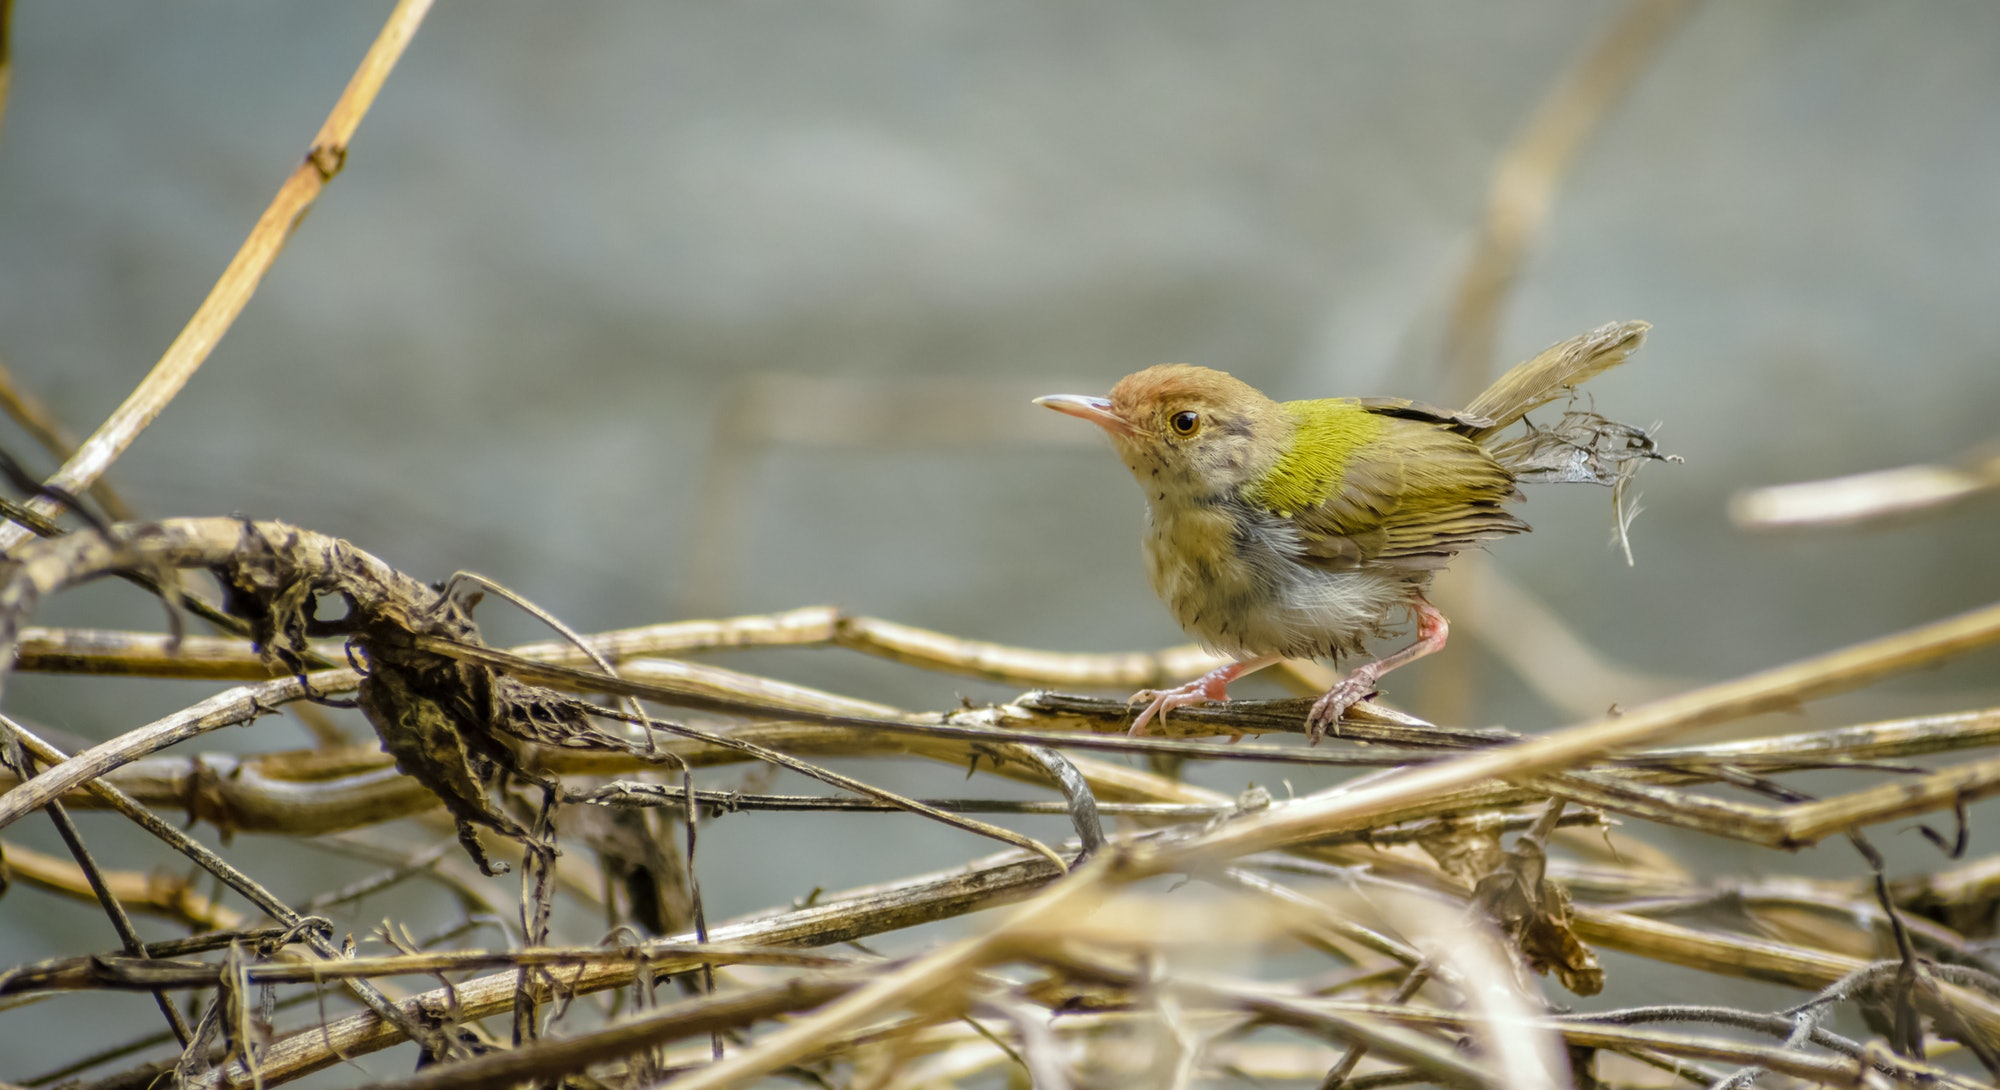 A matured common tailorbird feathers stuck to its back after defecation